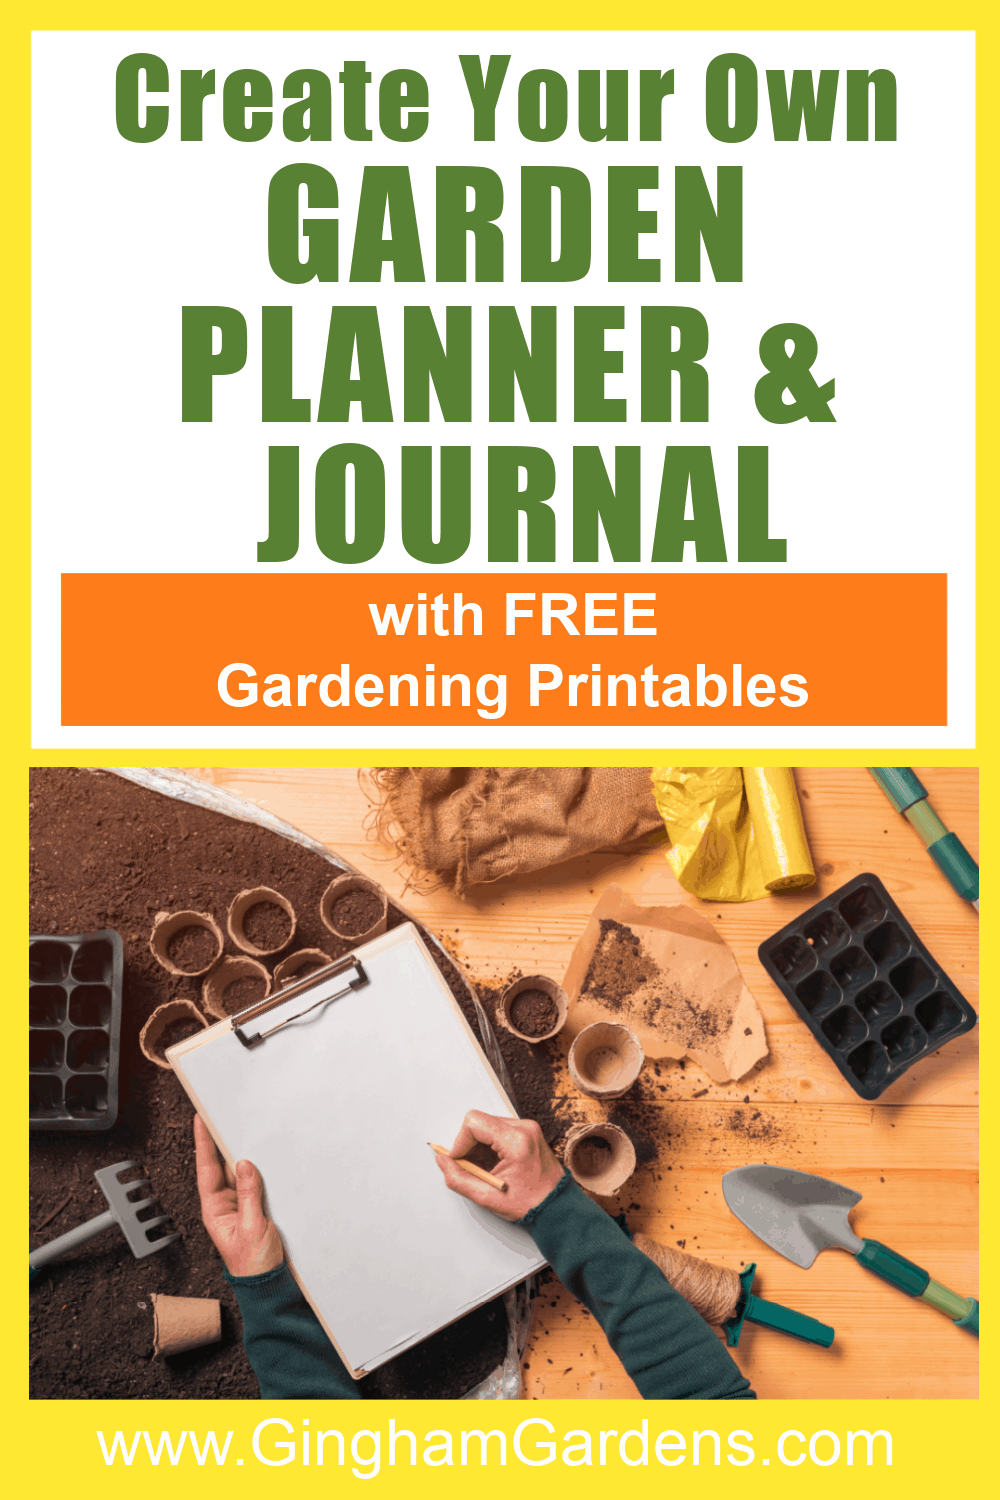 Image of a Gardener with a Planner with text overlay - Create Your Own Garden Journal and Planner